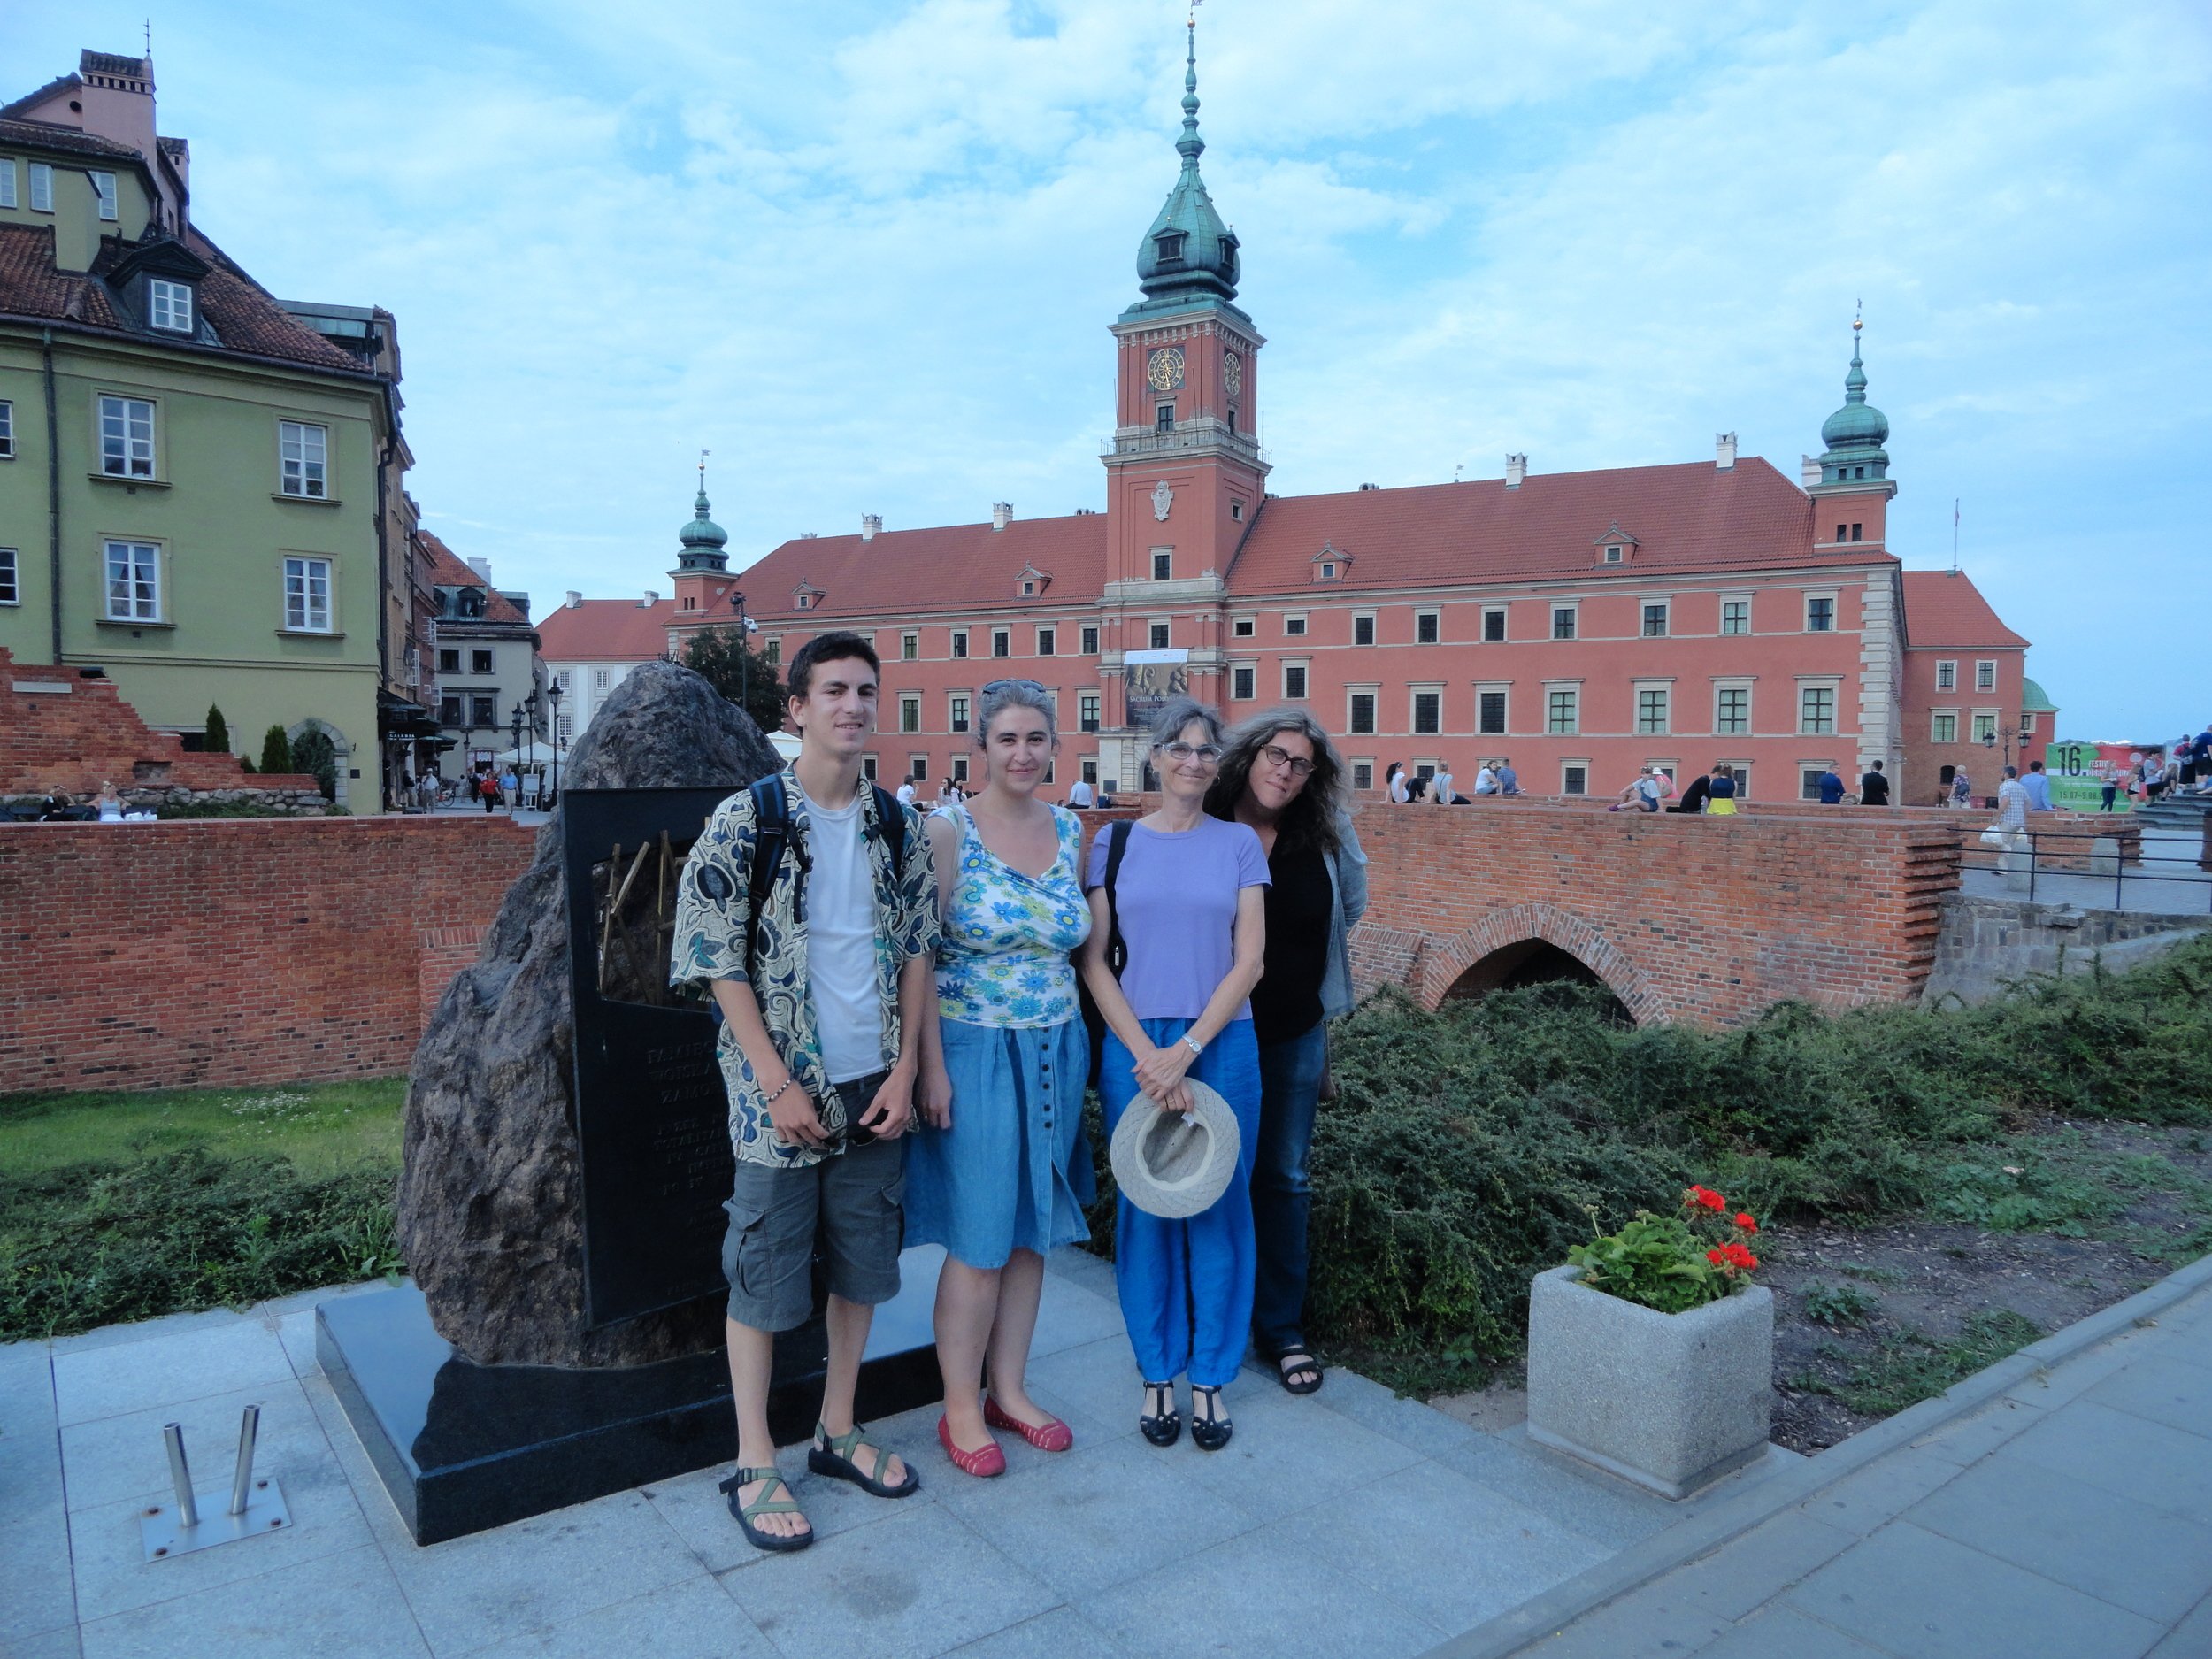 Oscar, Monika, Susan and me in Castle Square in front of the Royal Castle.